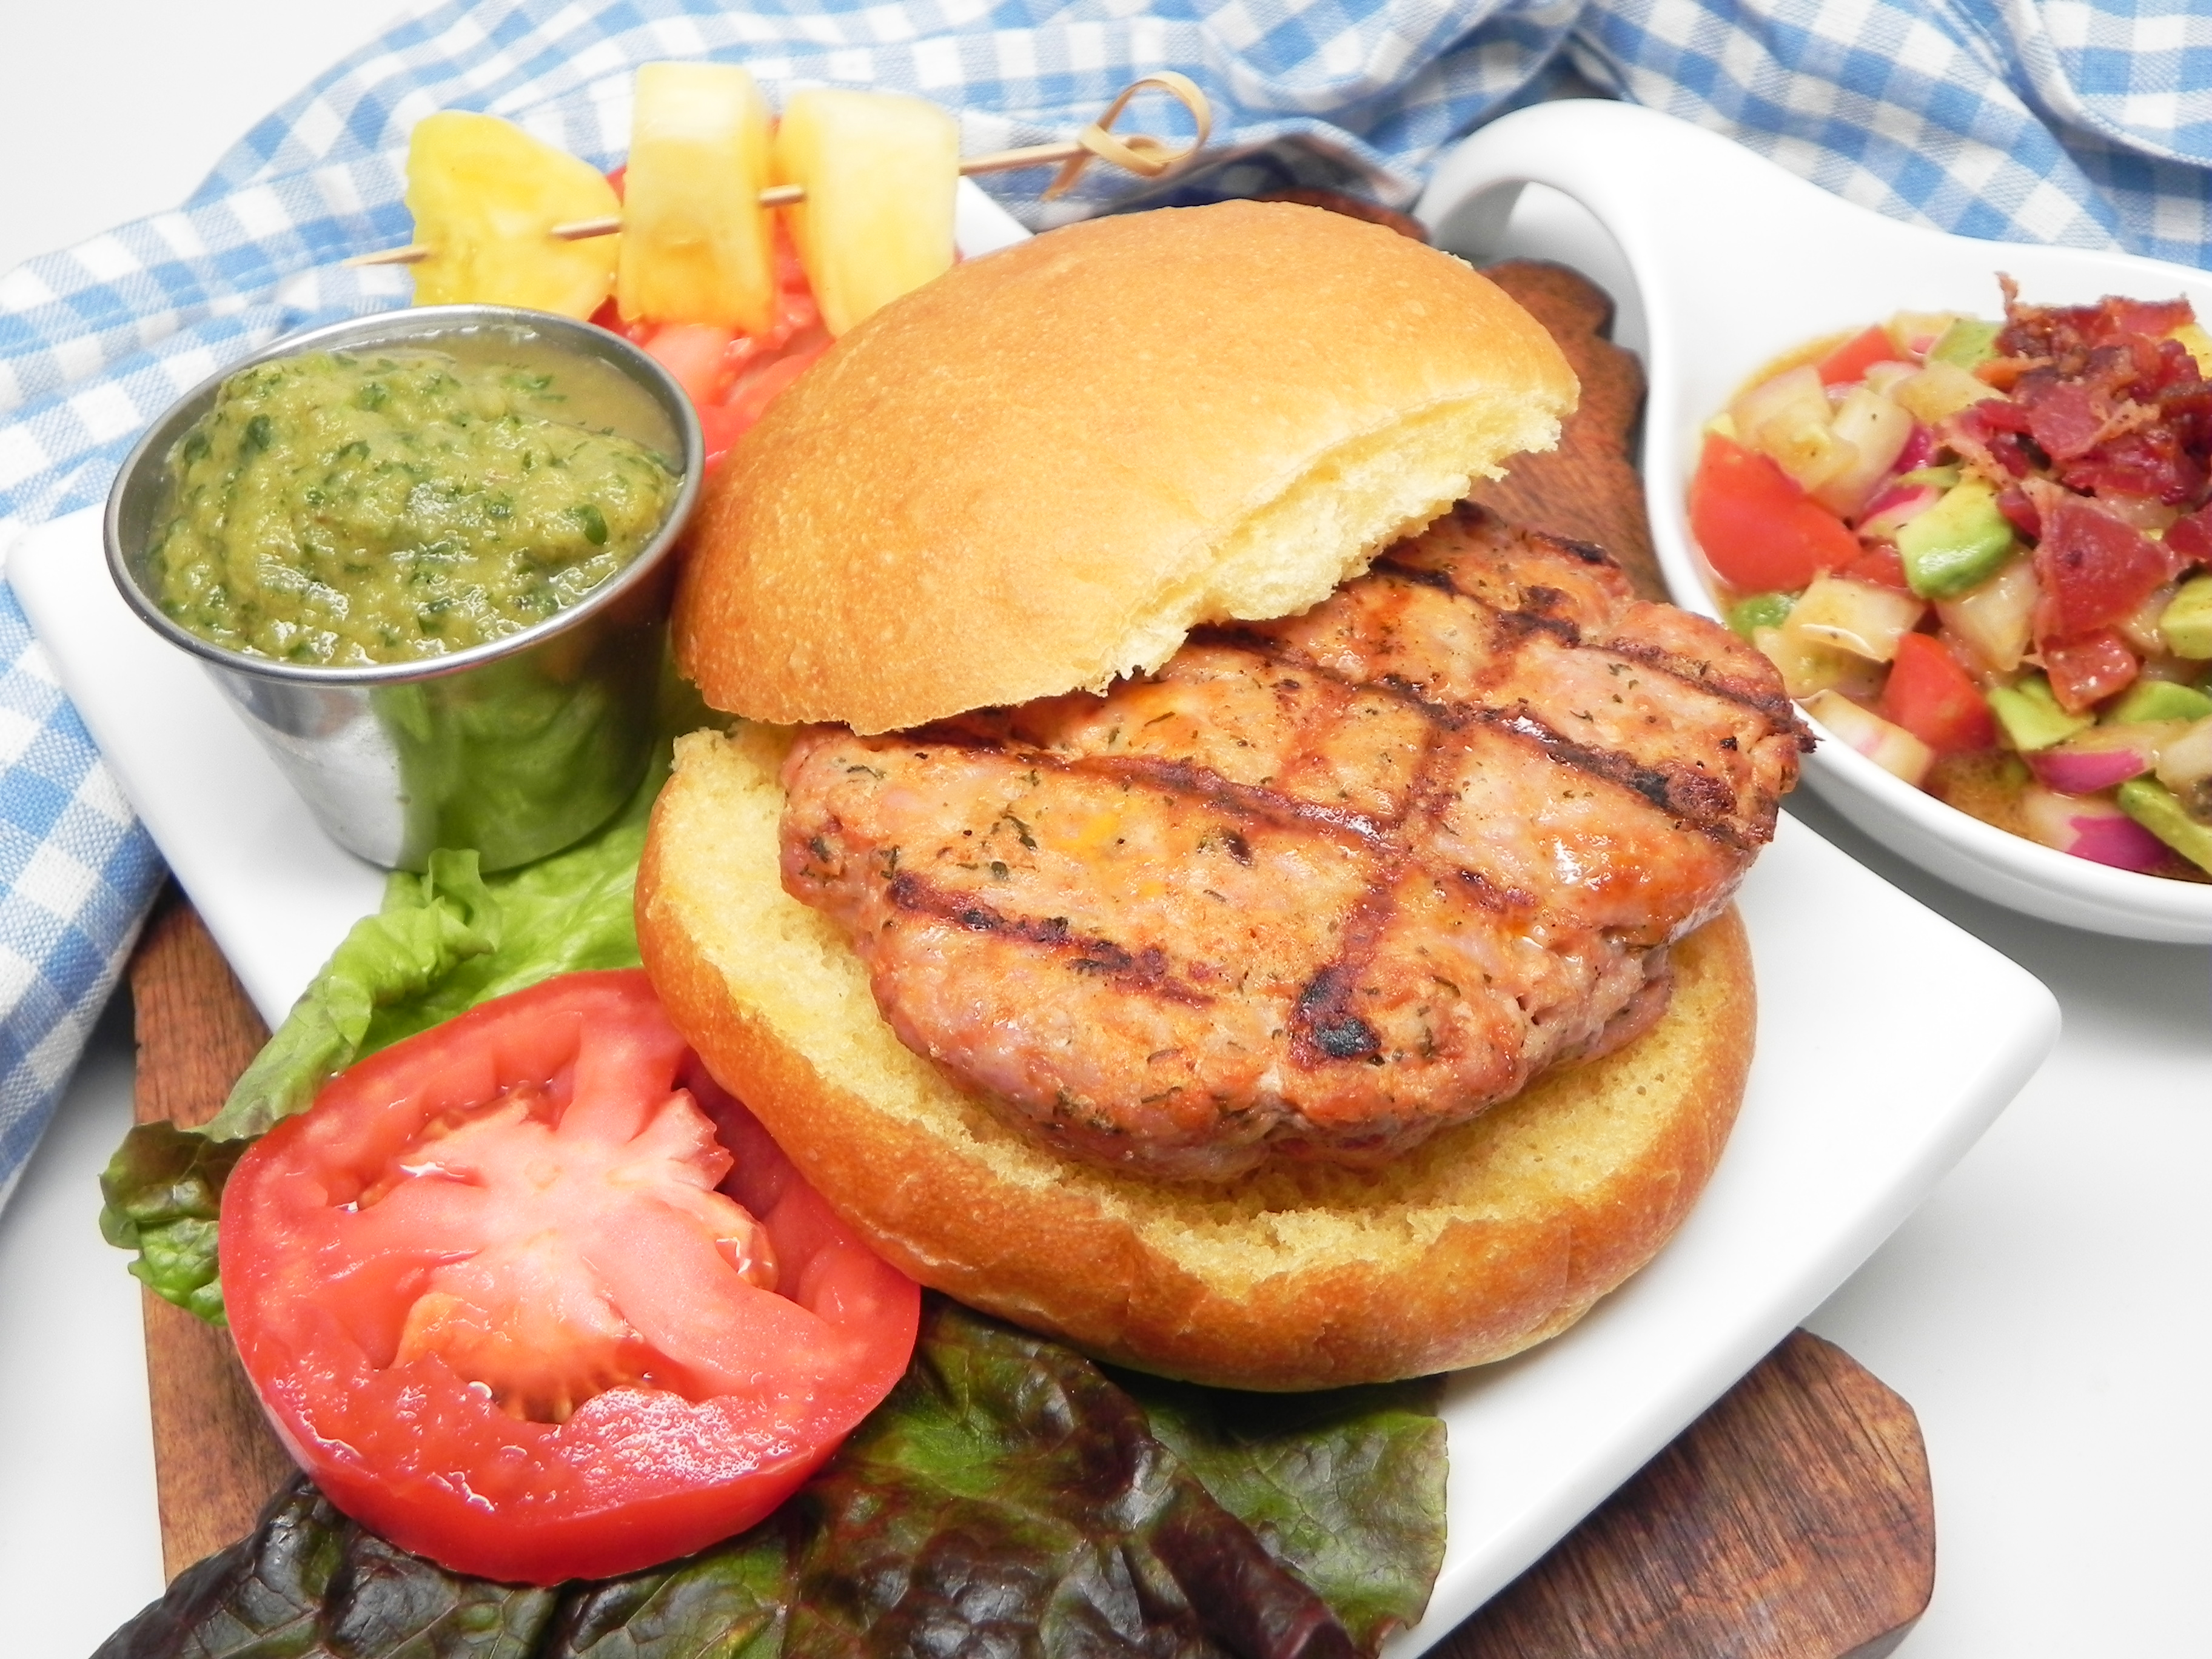 Grilled Pork Burgers with Pineapple Salsa waterlily78